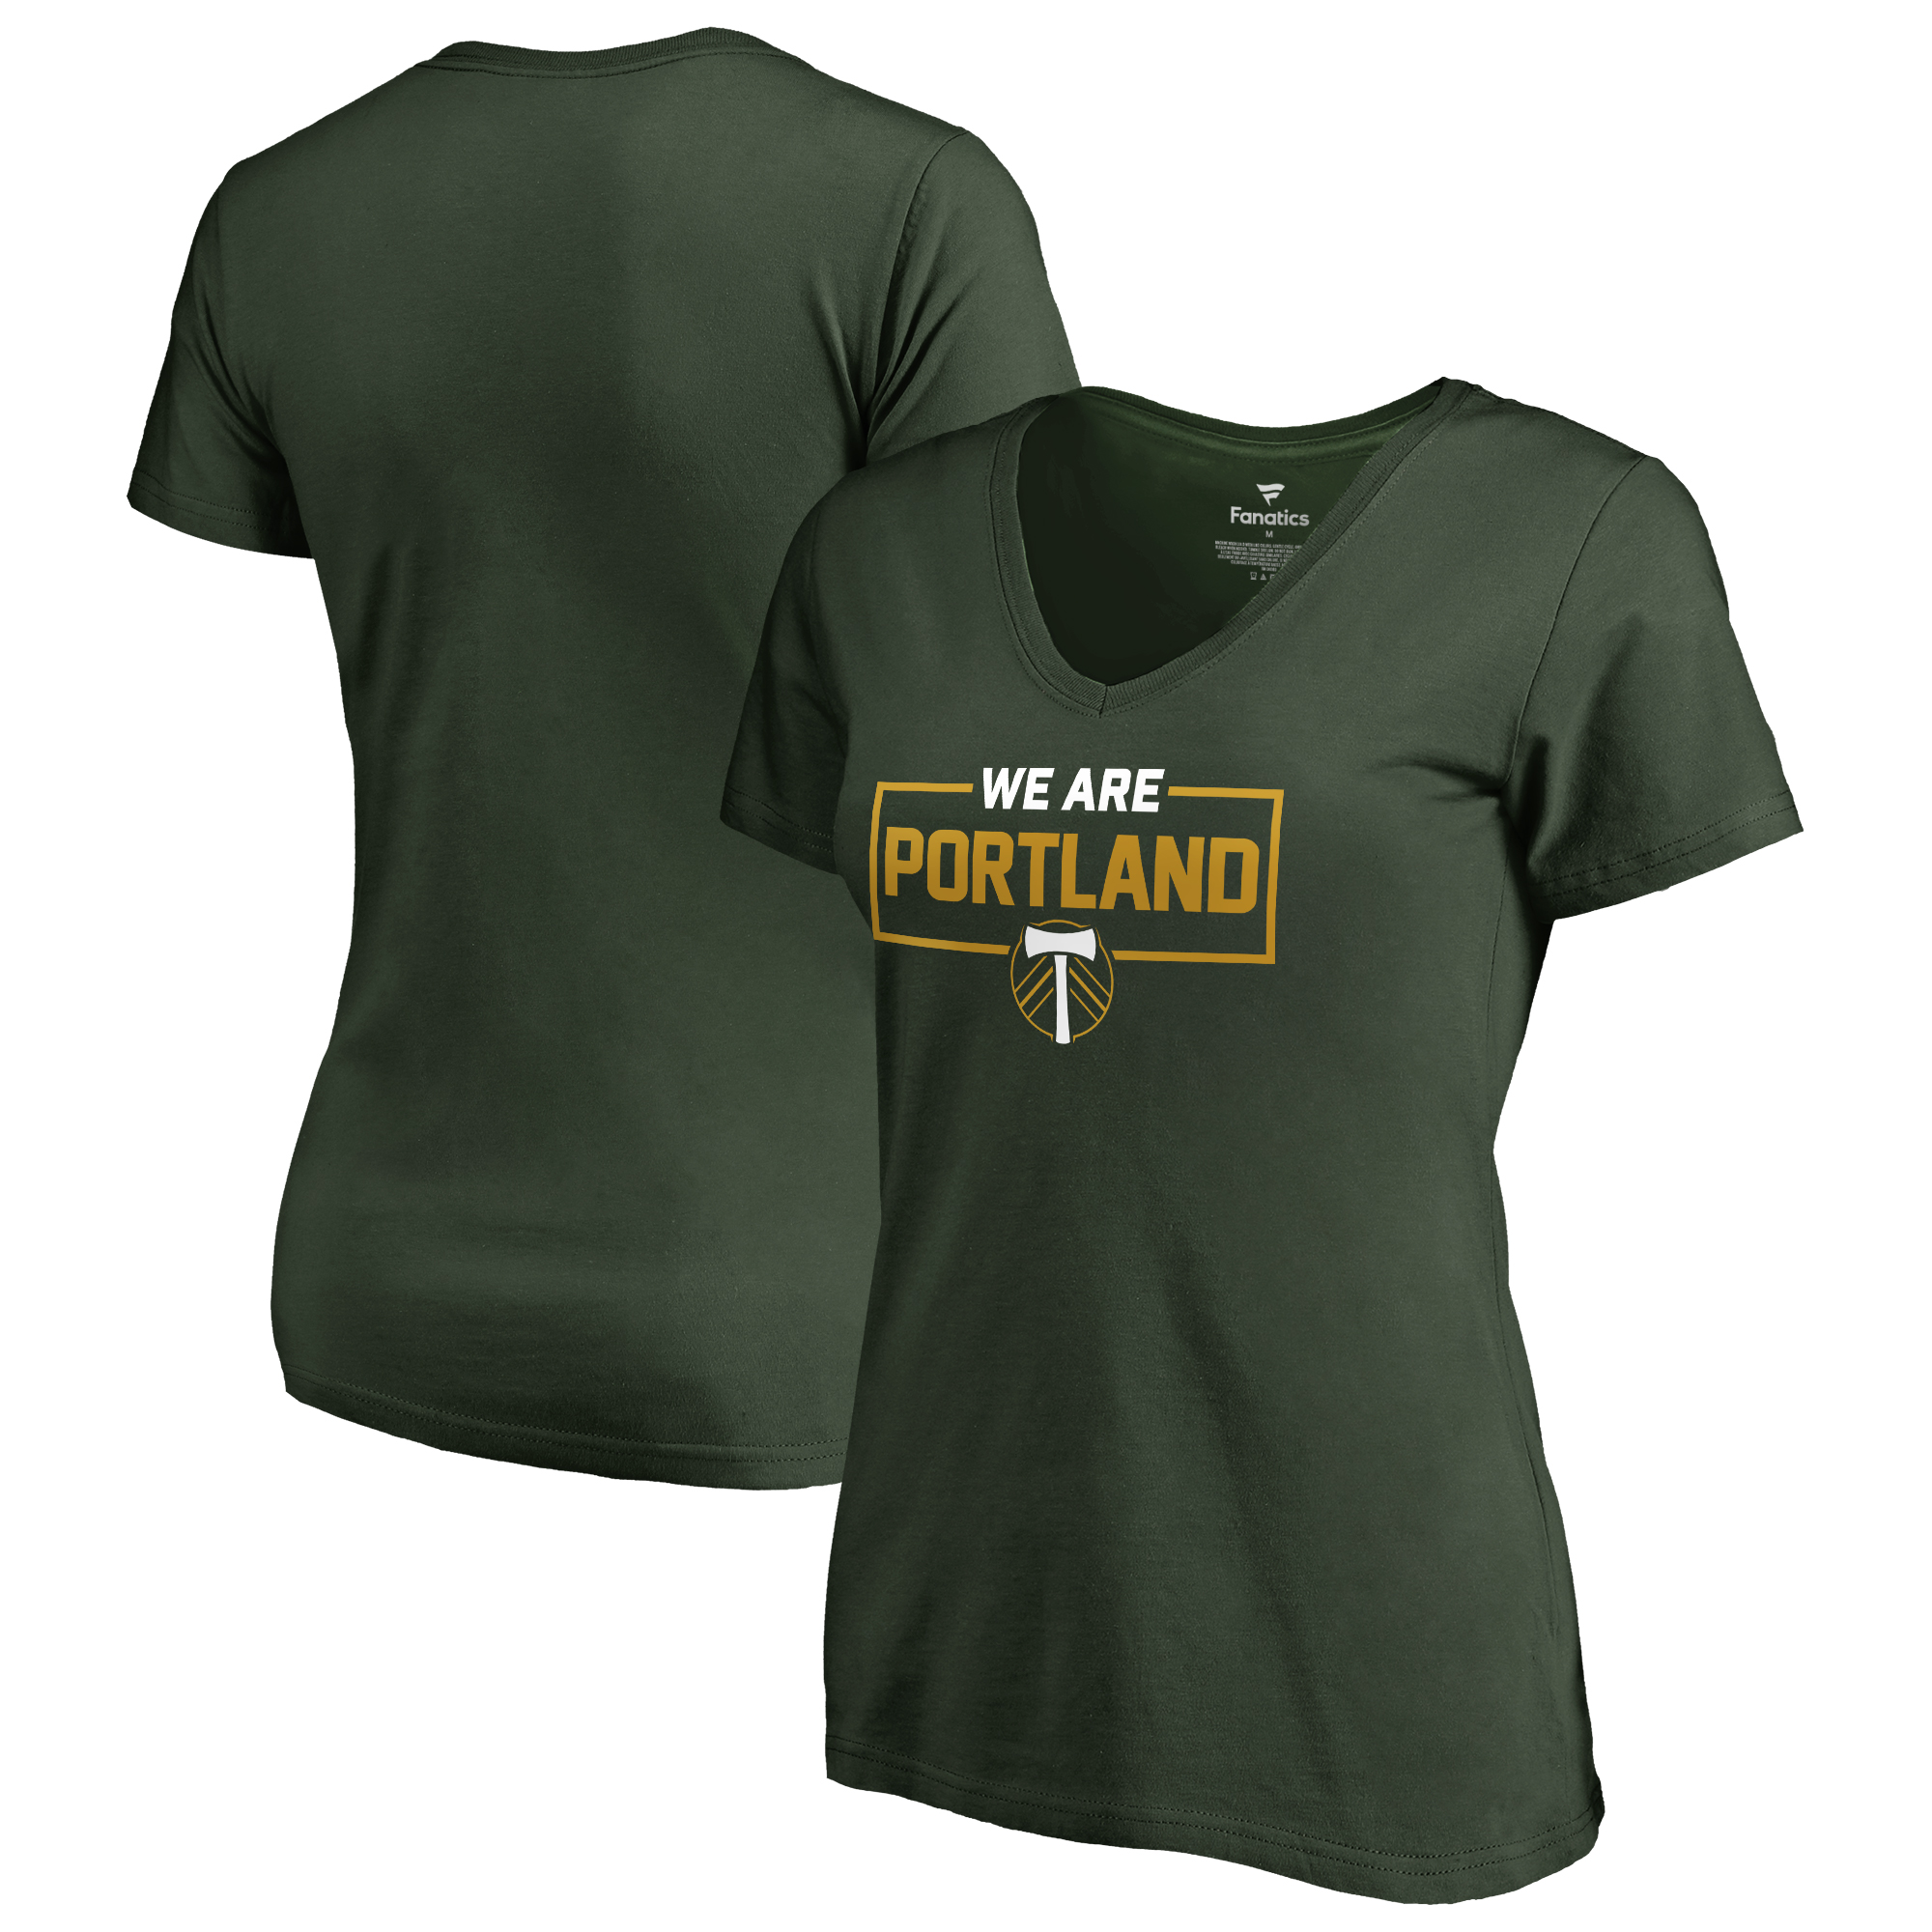 Portland Timbers Fanatics Branded Women's We Are V-Neck T-Shirt - Green